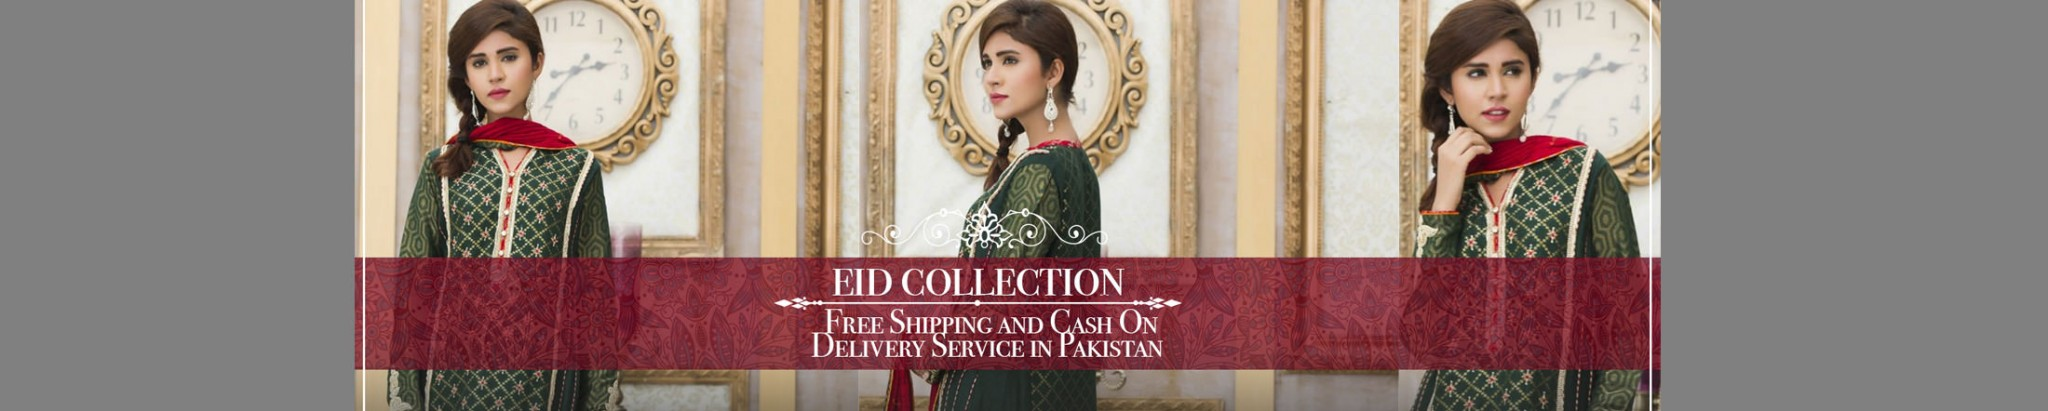 Eid-Collection-Party-Dresses